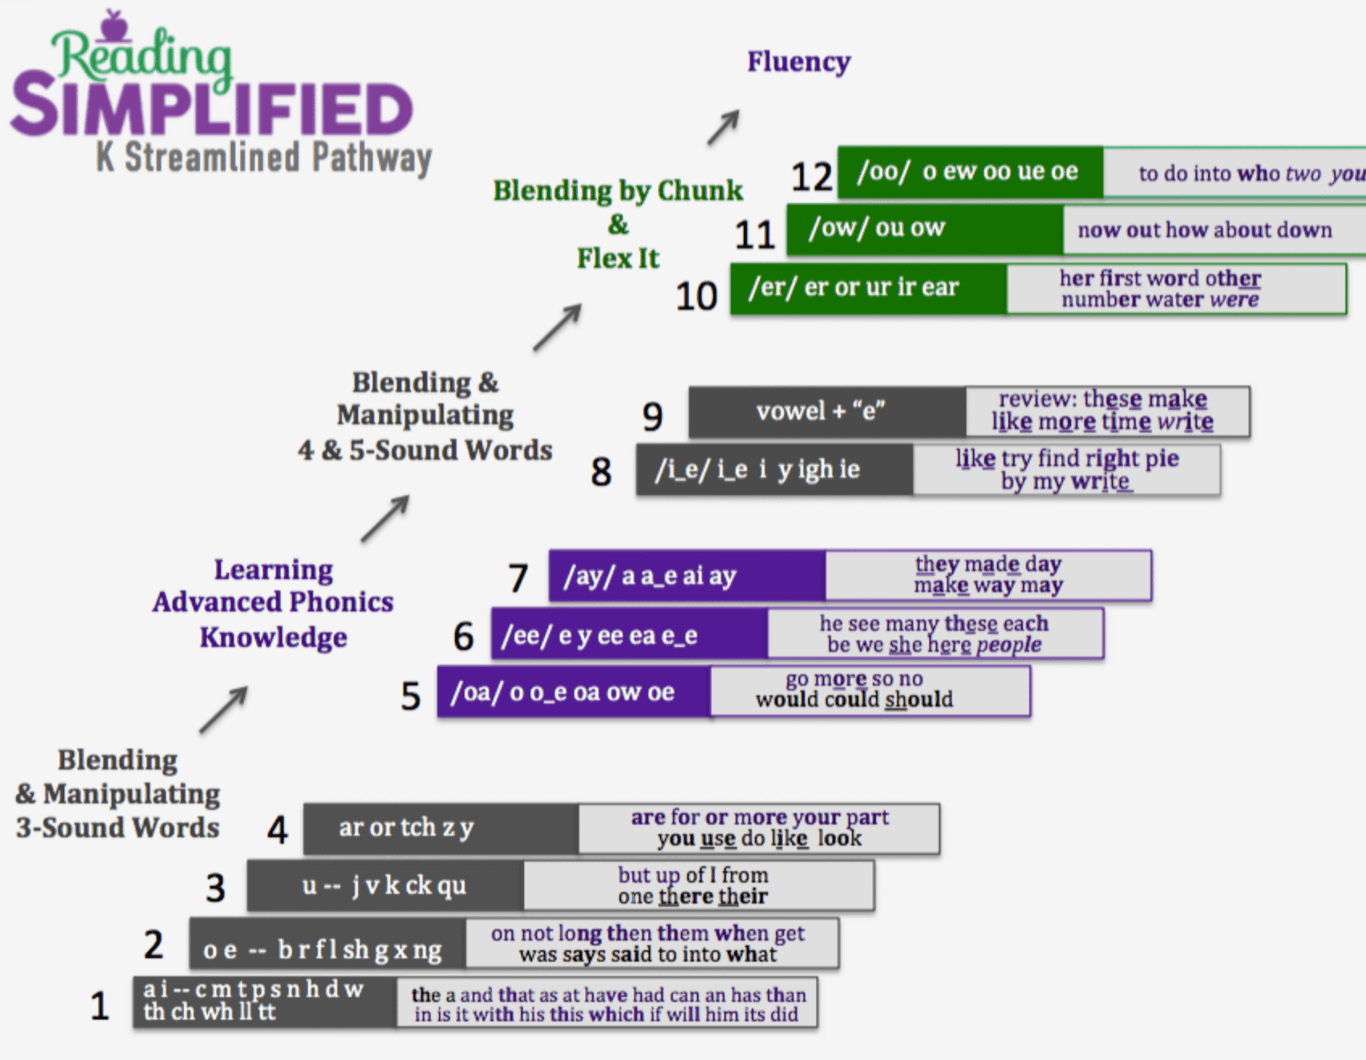 Whole Phonics Reading Simplified Pathway